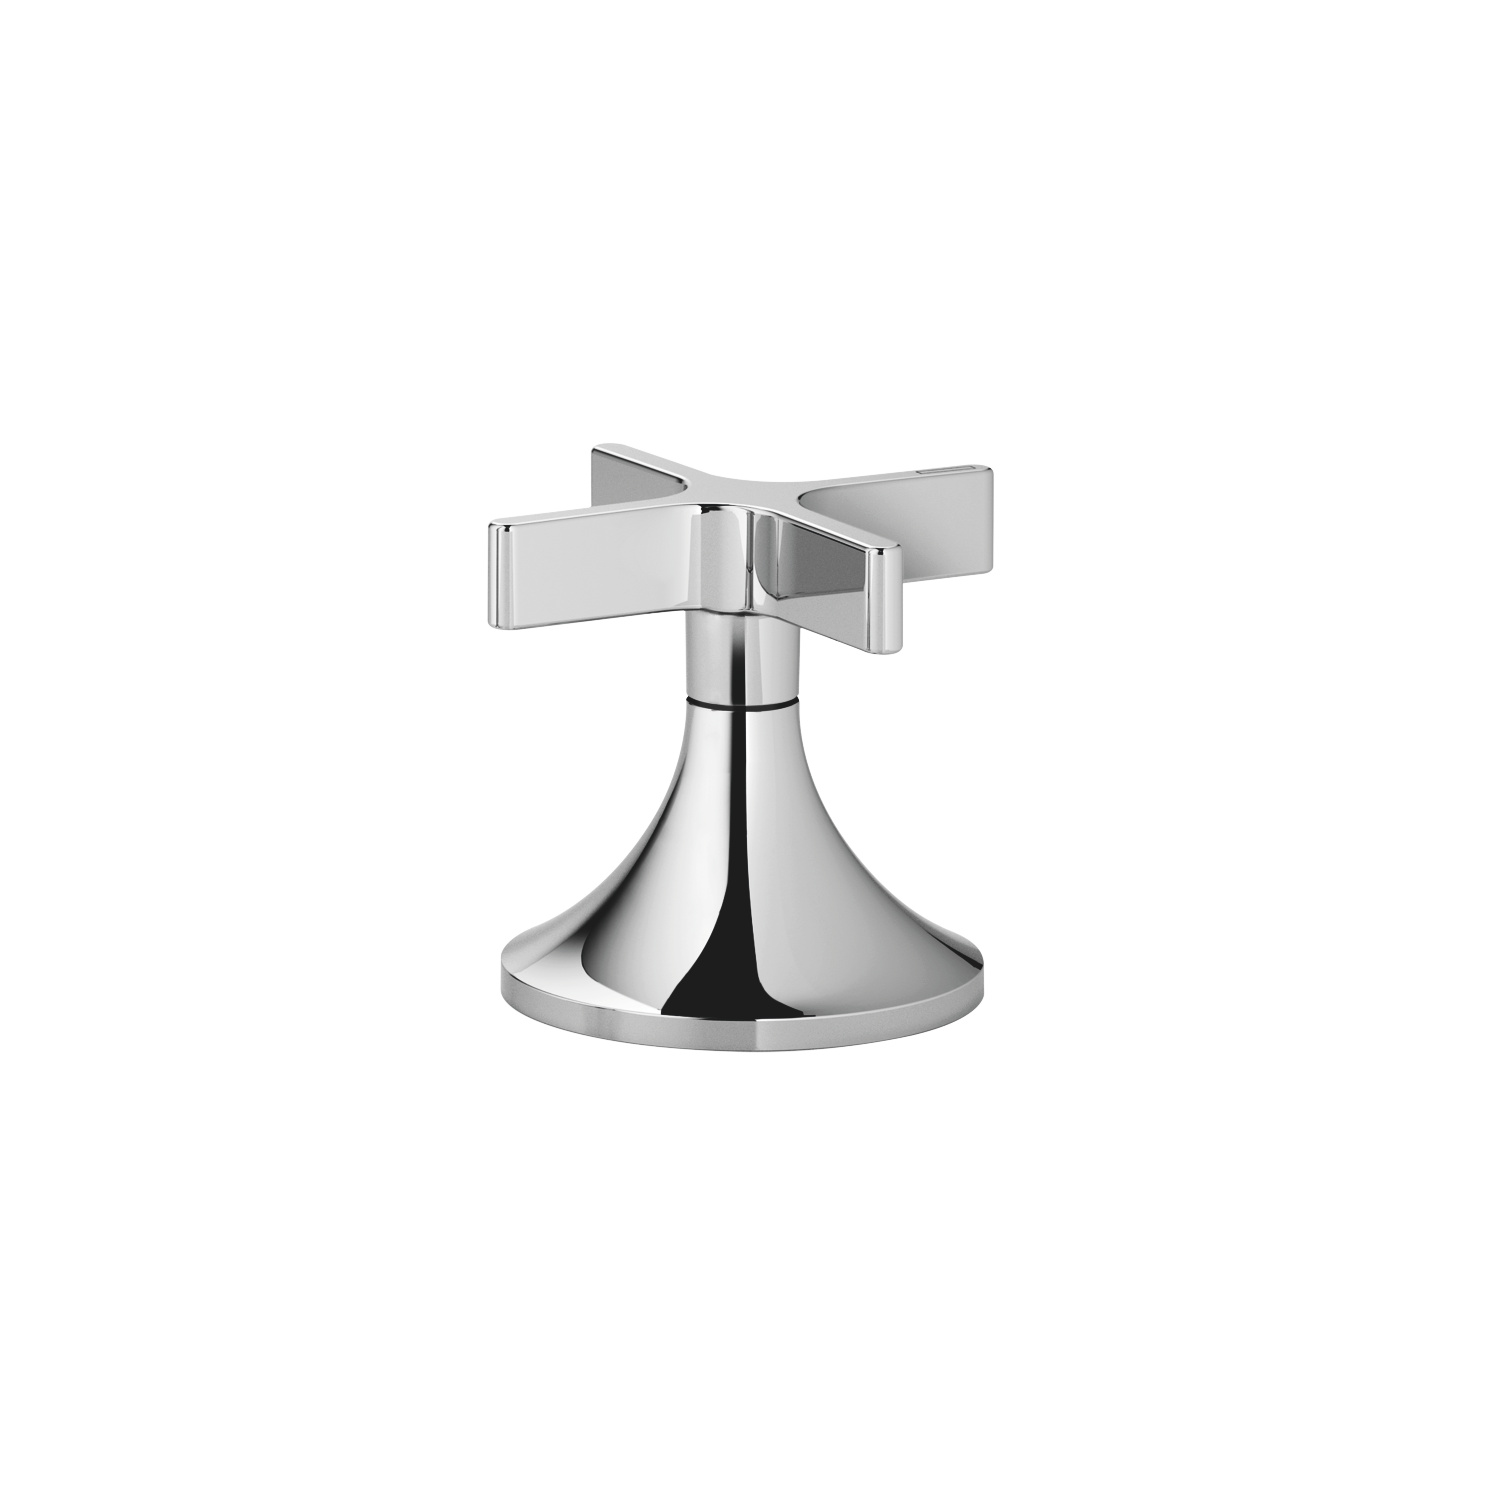 Deck valve clockwise closing cold - polished chrome